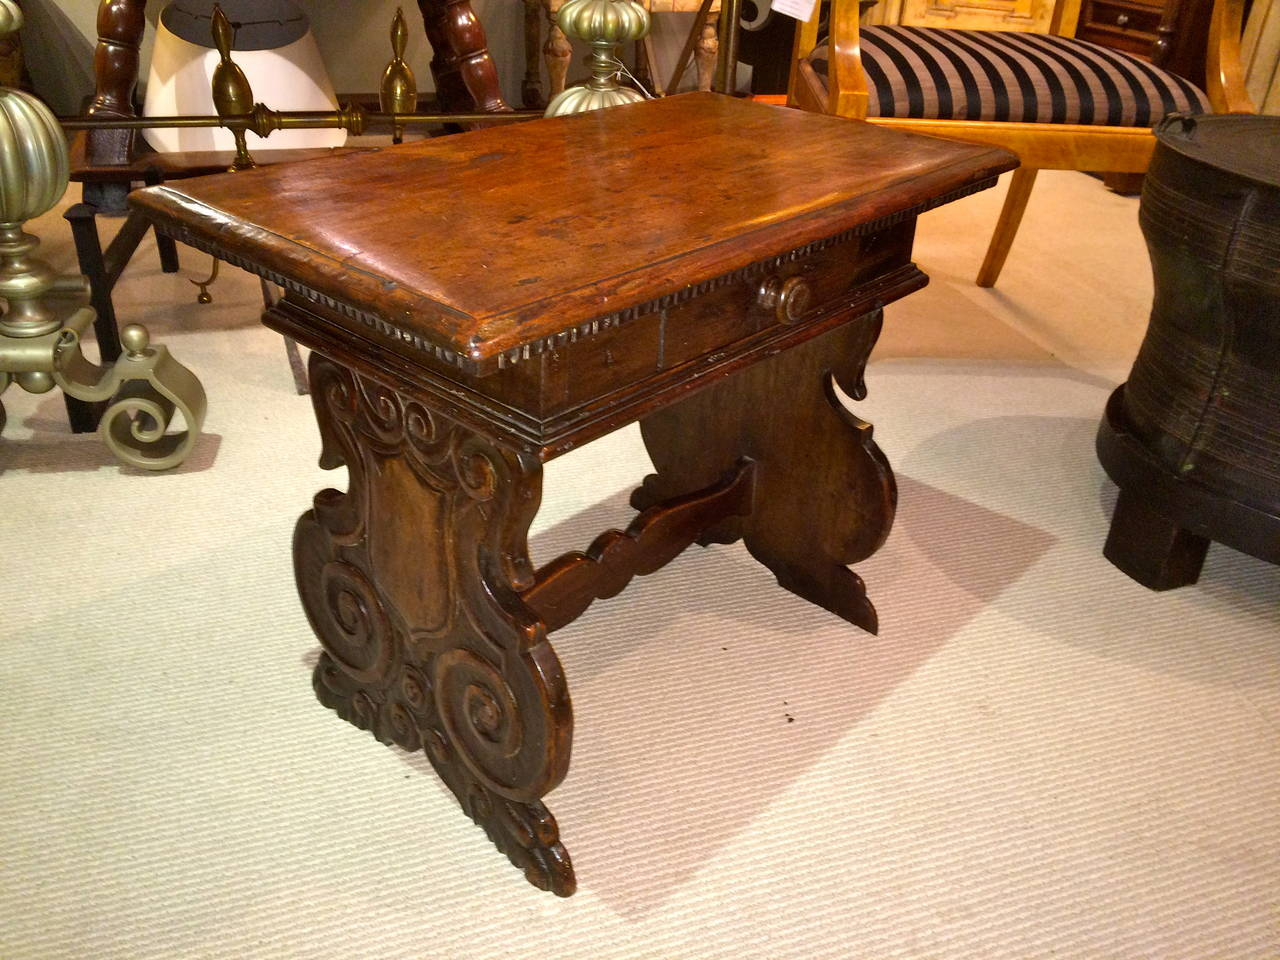 Handsome Italian Baroque style walnut side table with sides carved with scroll-work and paw feet. Single drawer, rich patina.